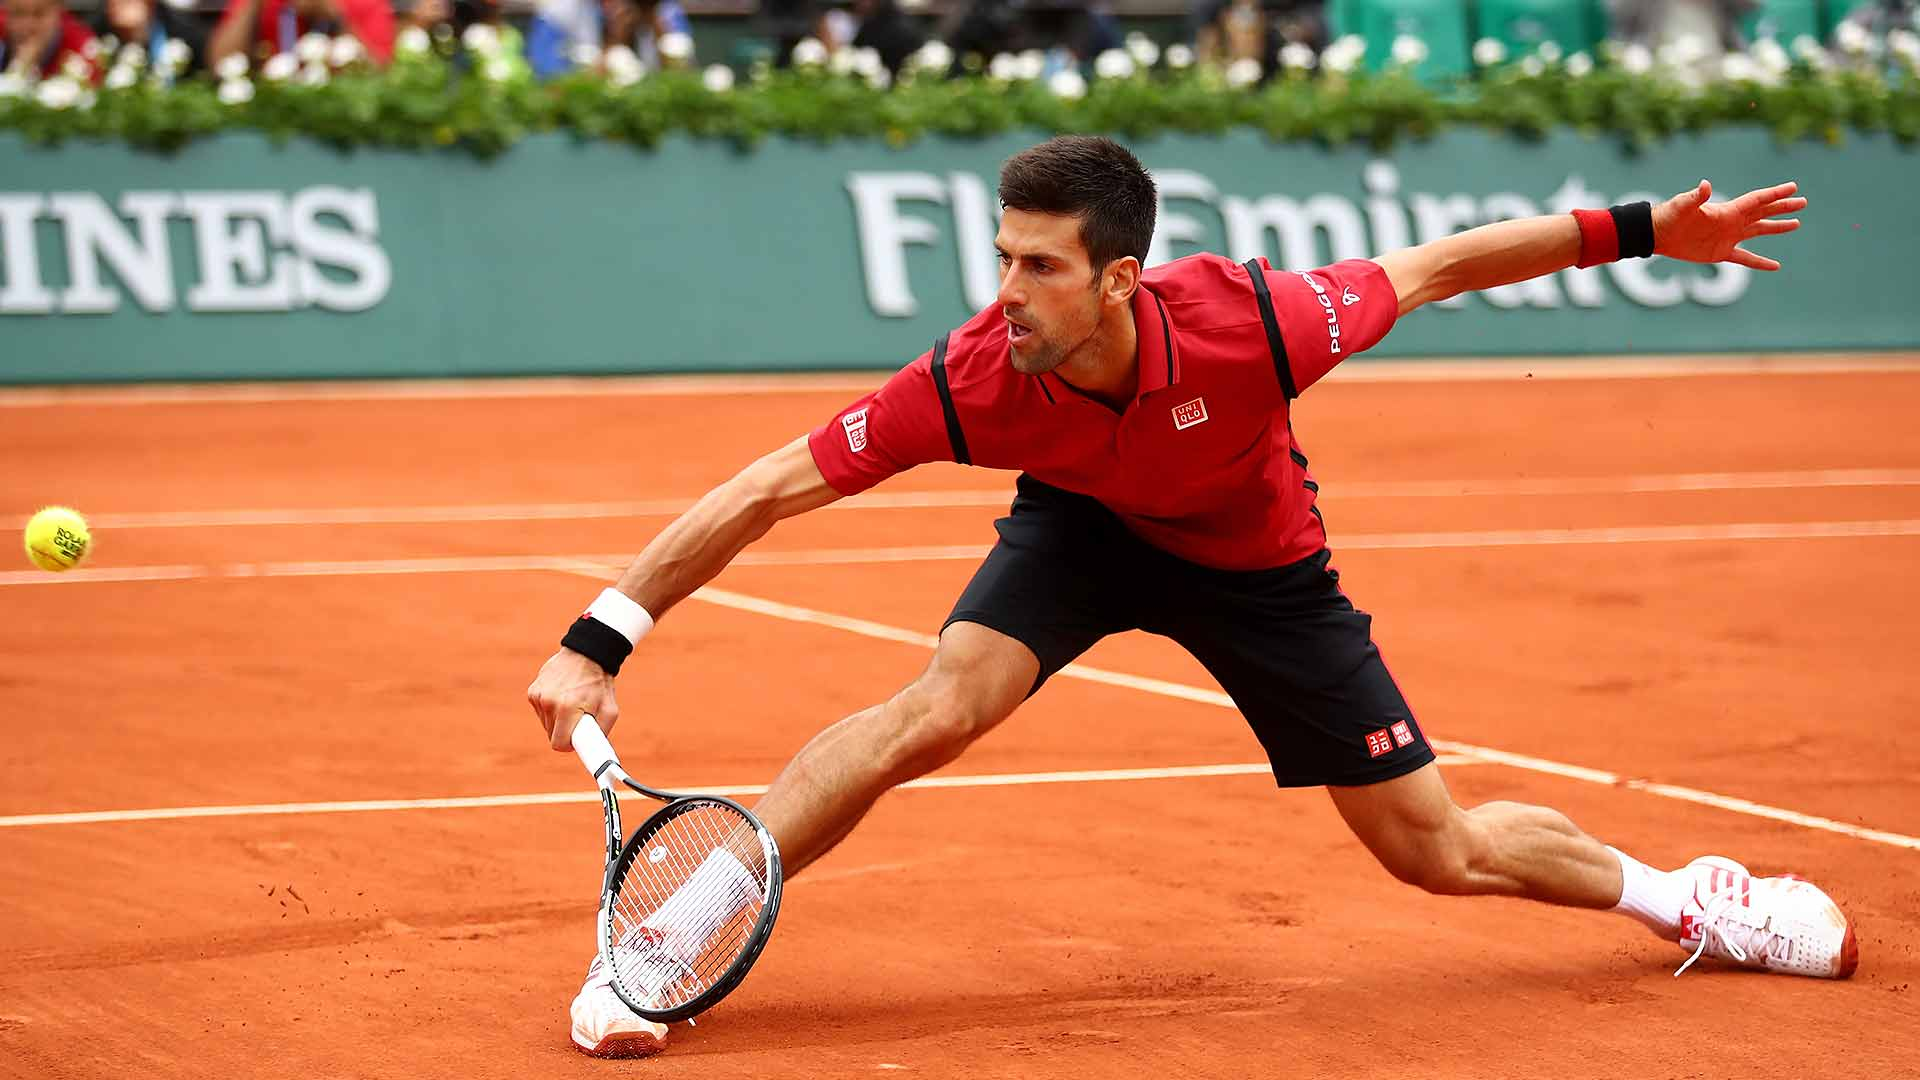 Bonus Question: What round will Novak Djokovic advance to?